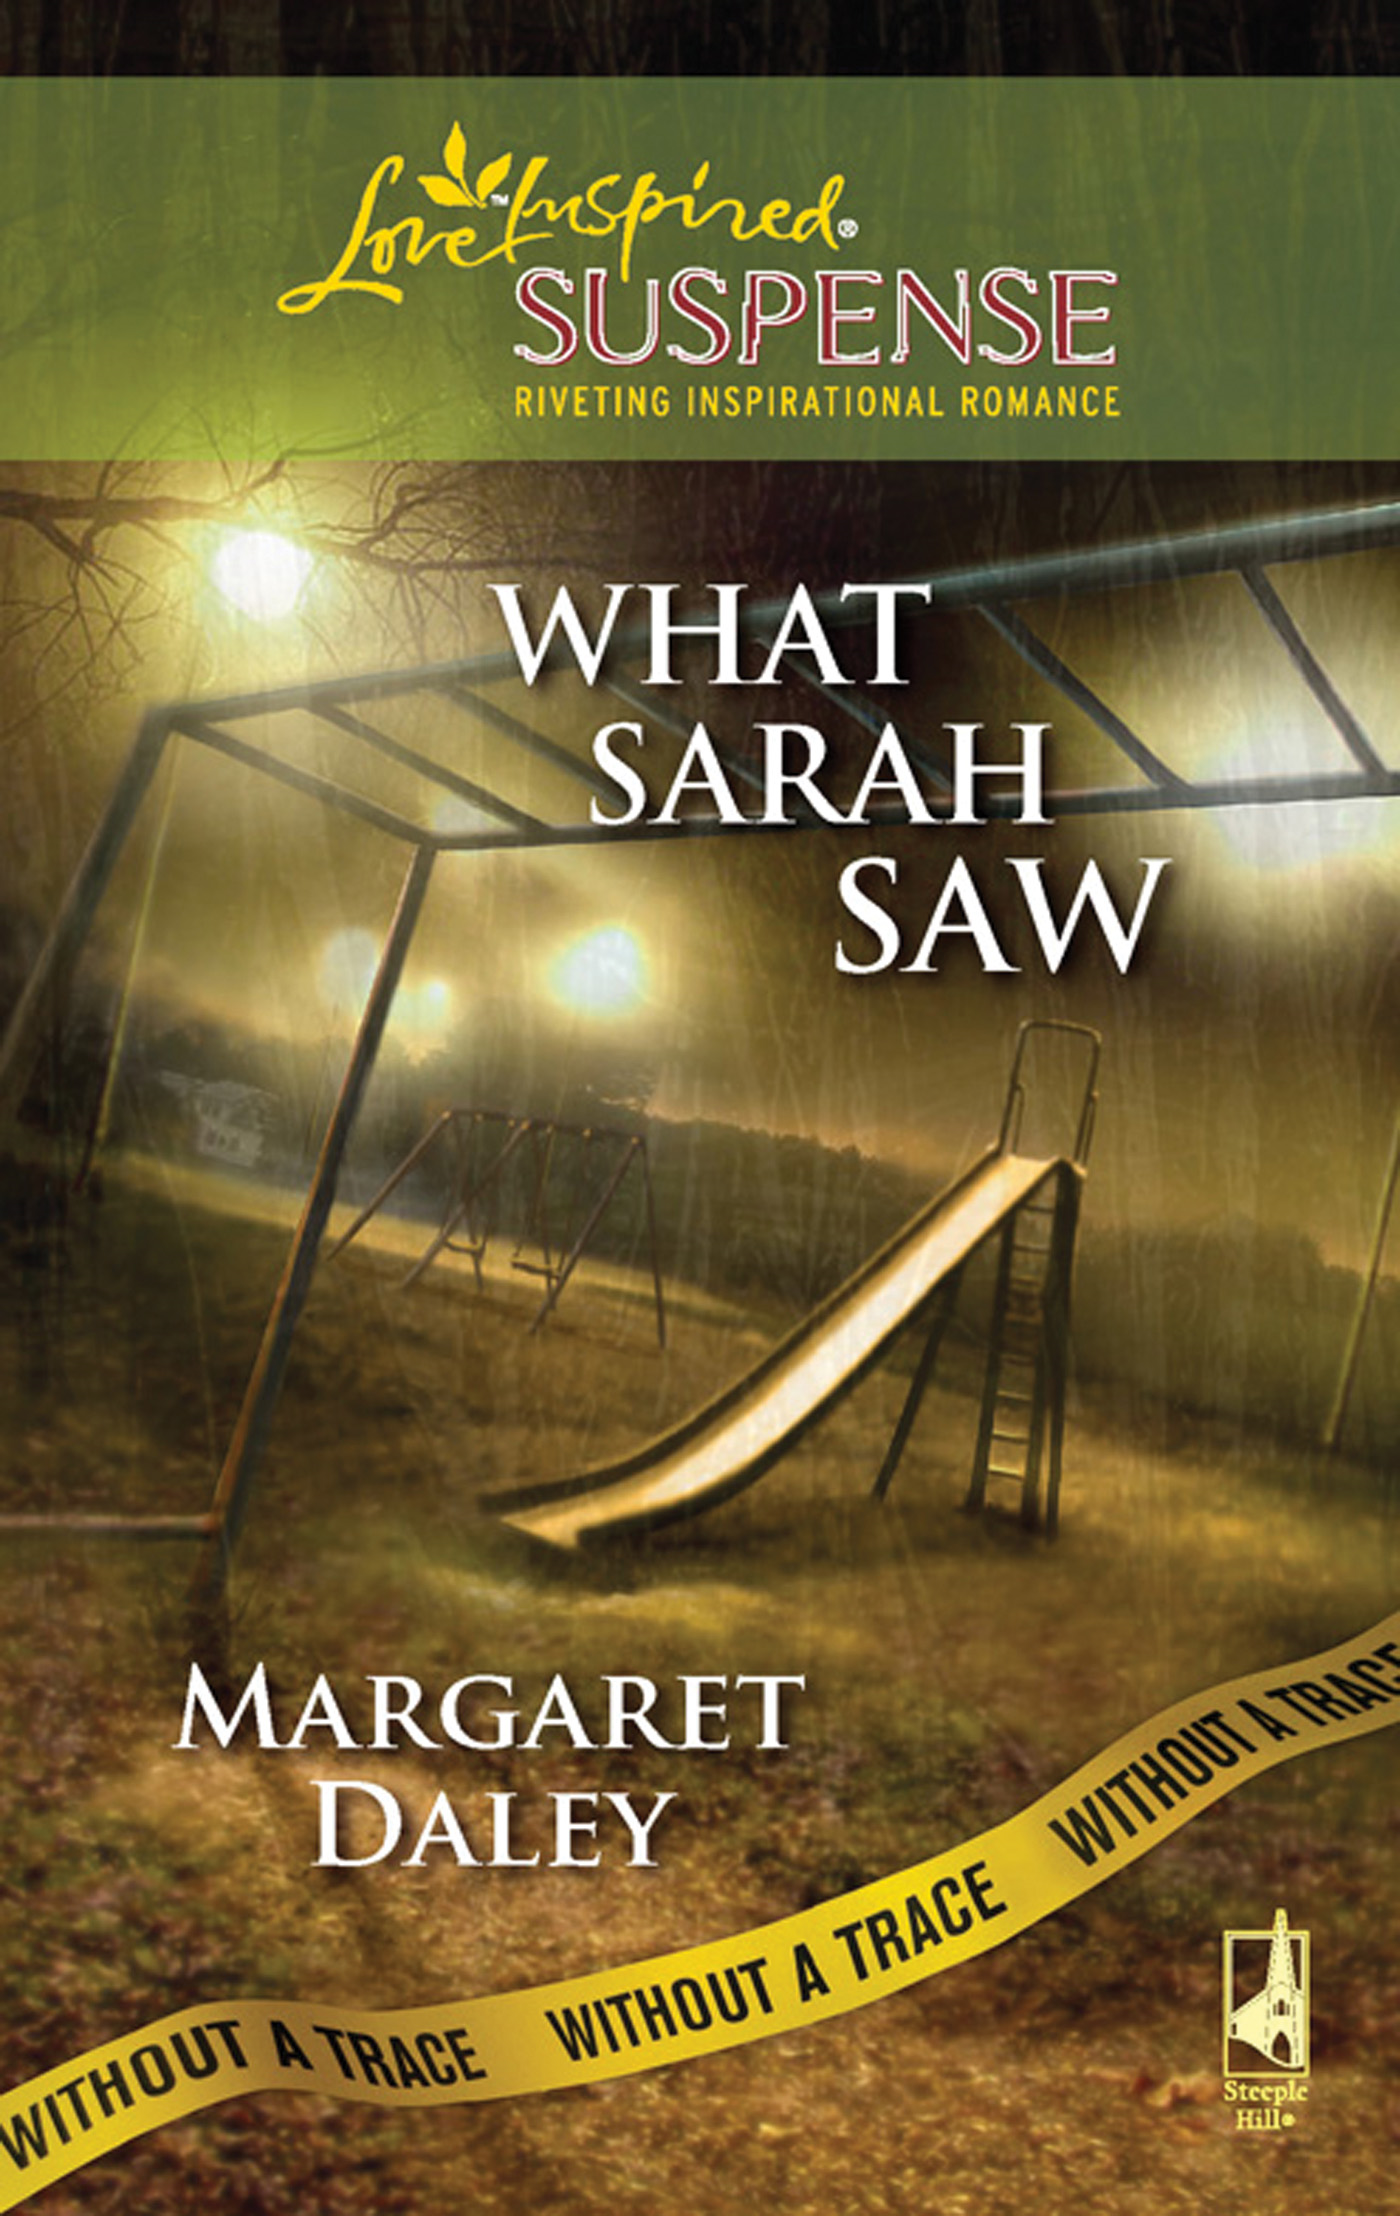 What Sarah Saw (Mills & Boon Love Inspired Suspense) (Without a Trace - Book 1)